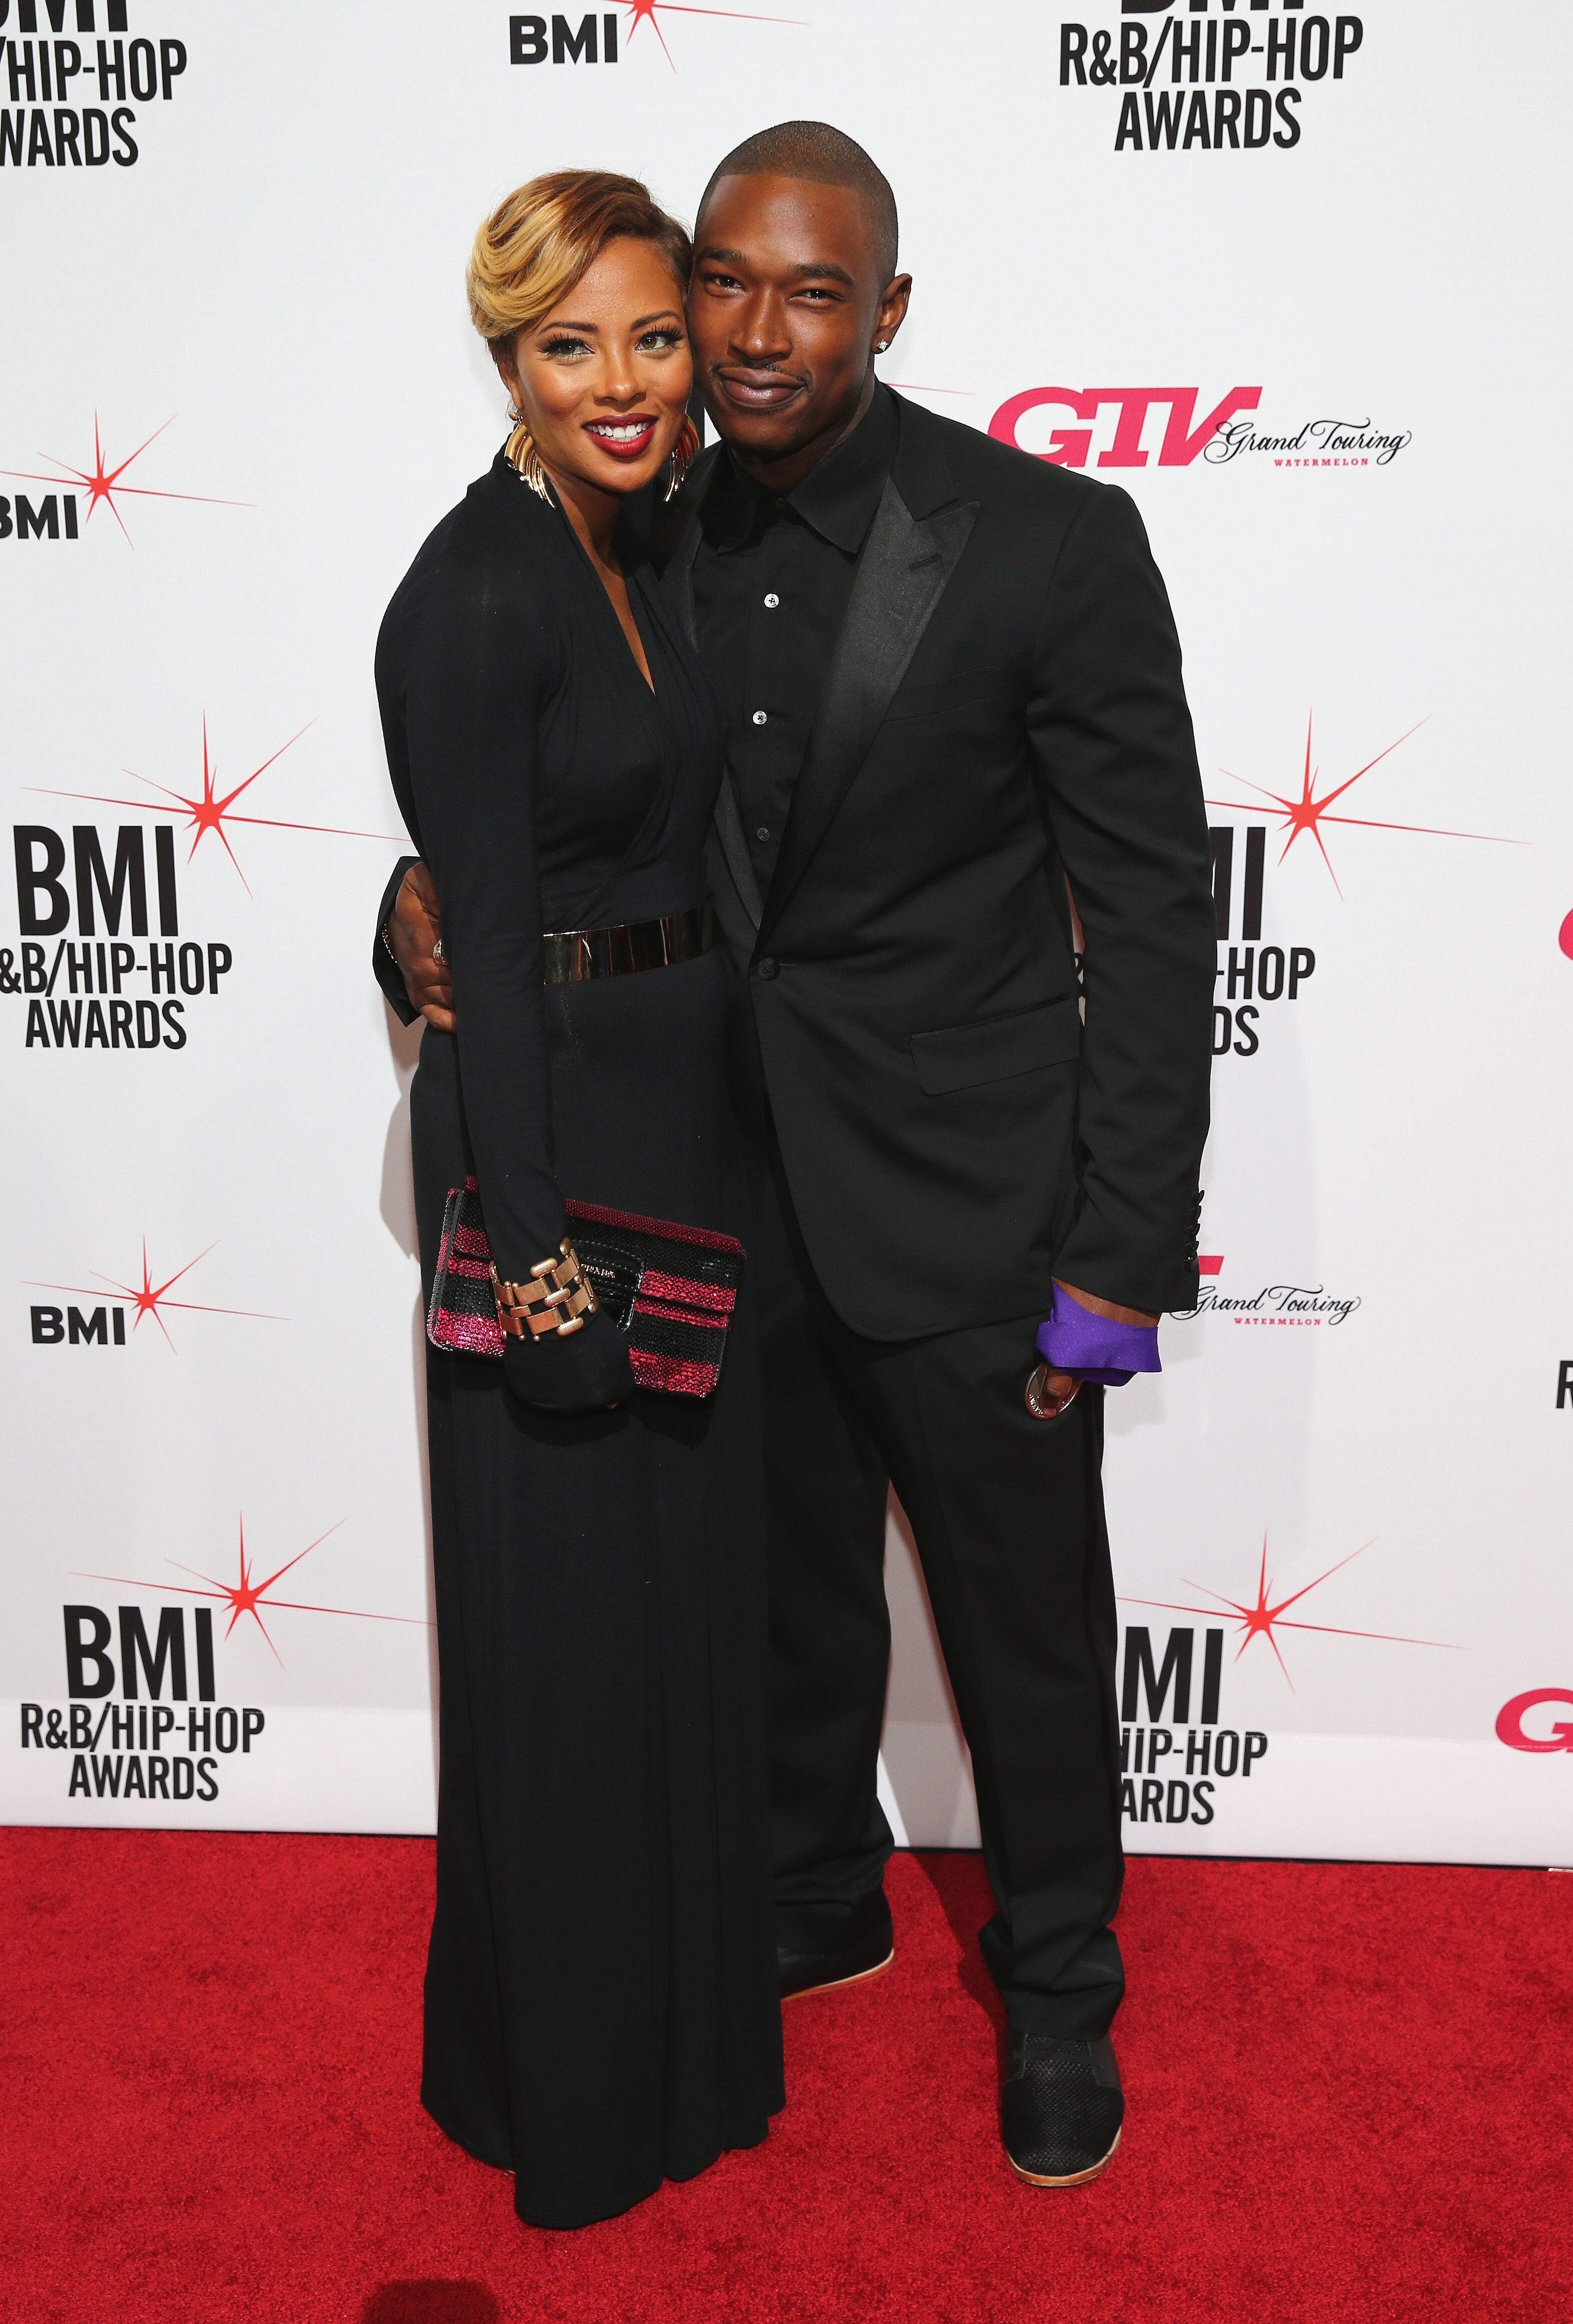 Eva Marcille and Kevin McCall attend 2013 BMI R&B/Hip-Hop Awards in New York   Source: Getty Images